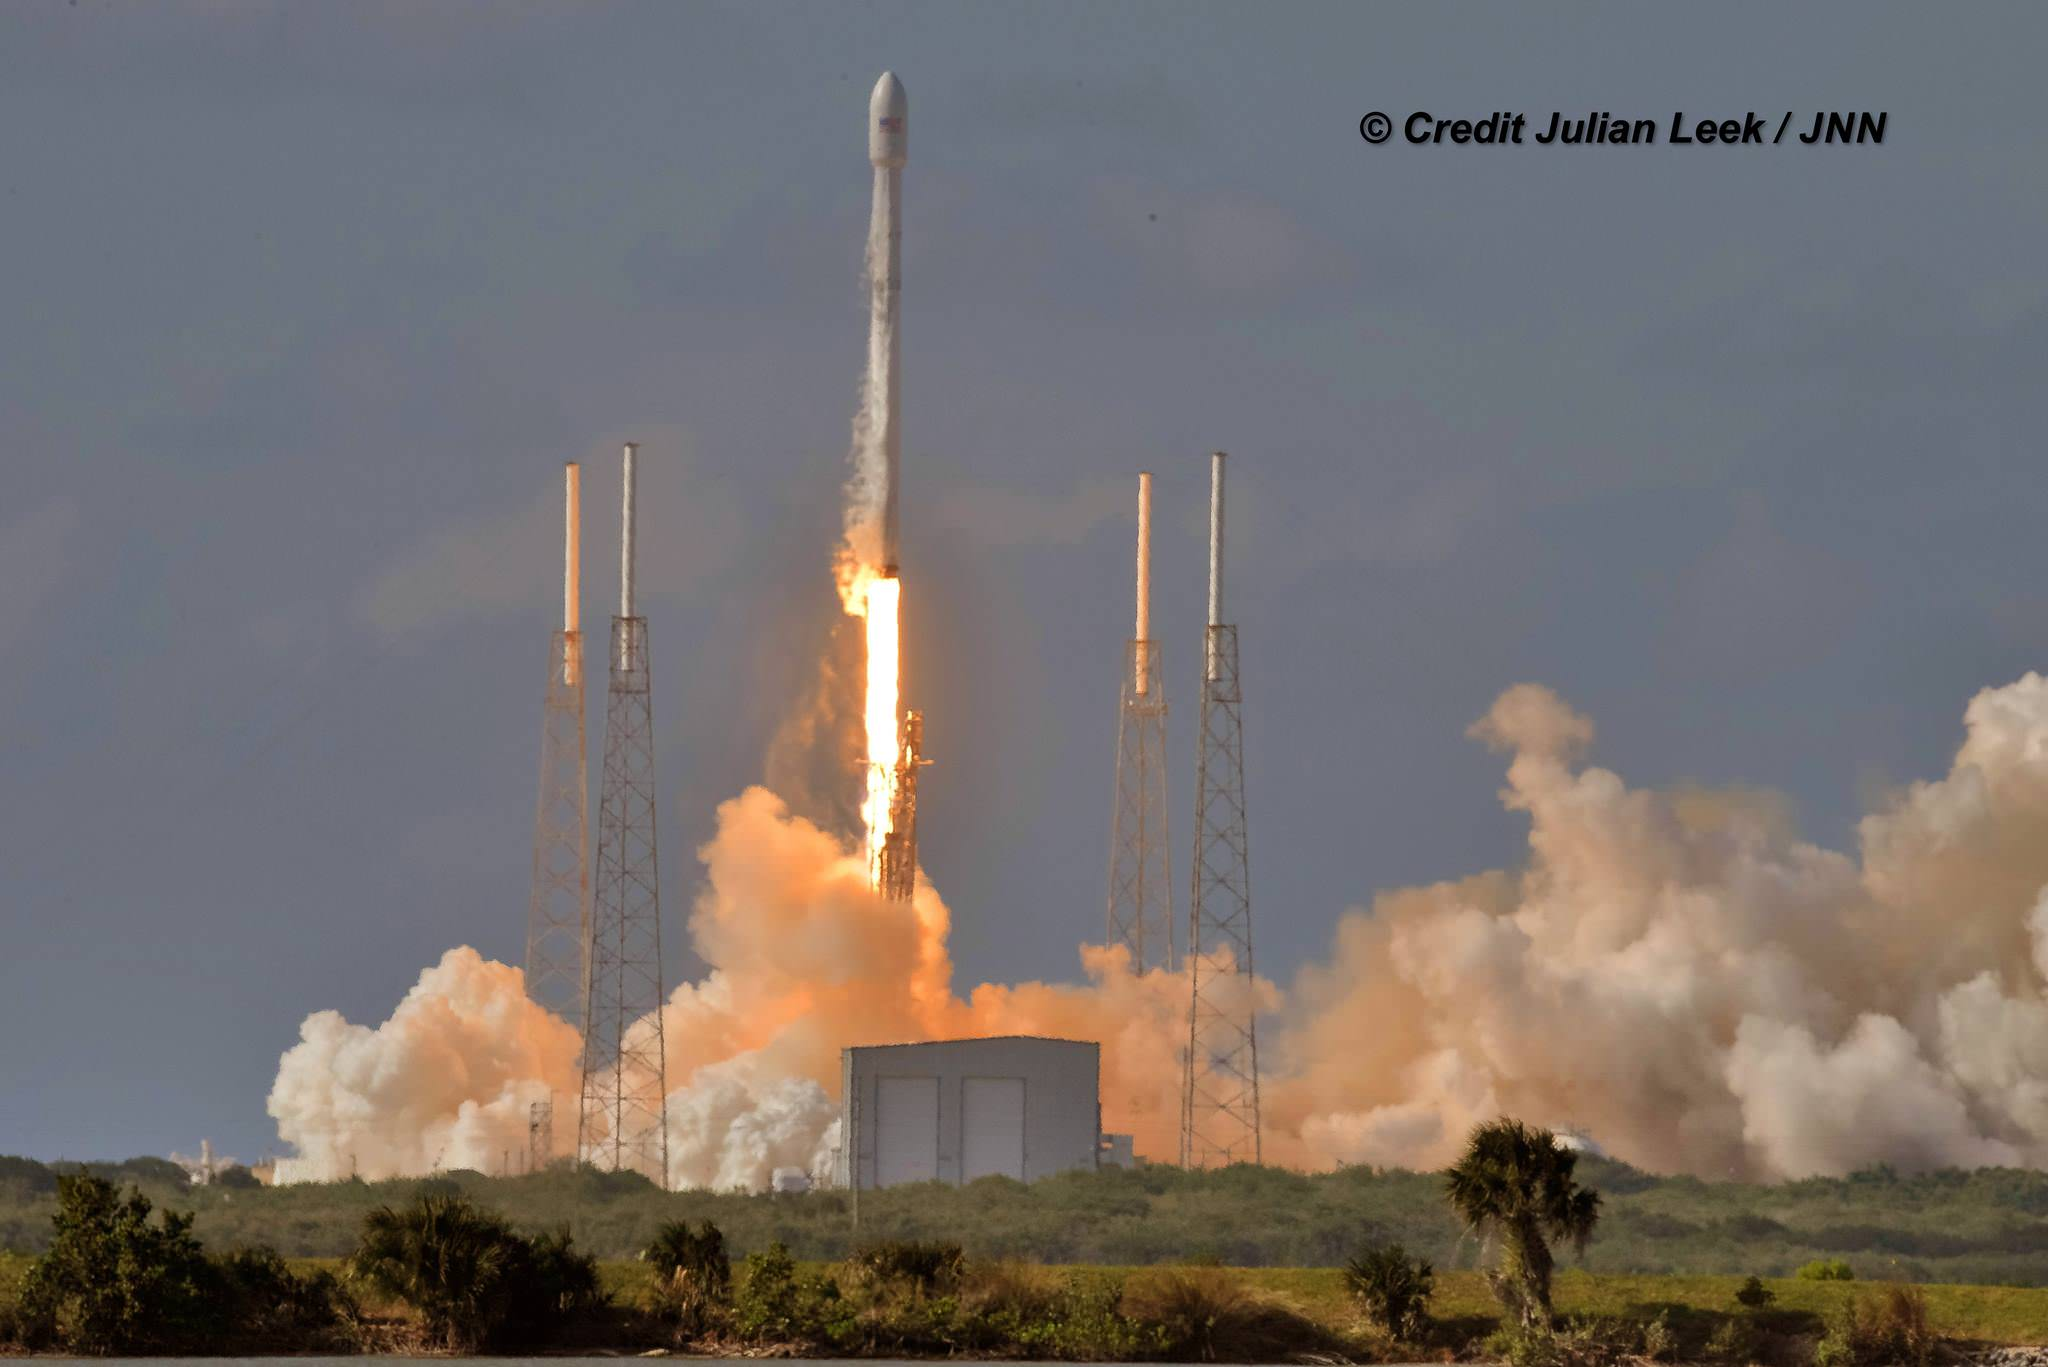 Launch of SpaceX Falcon 9 carrying Thaicom-8 to orbit on May 27, 2016 from Space Launch Complex 40 at Cape Canaveral Air Force Station, Fl.  Credit: Julian Leek